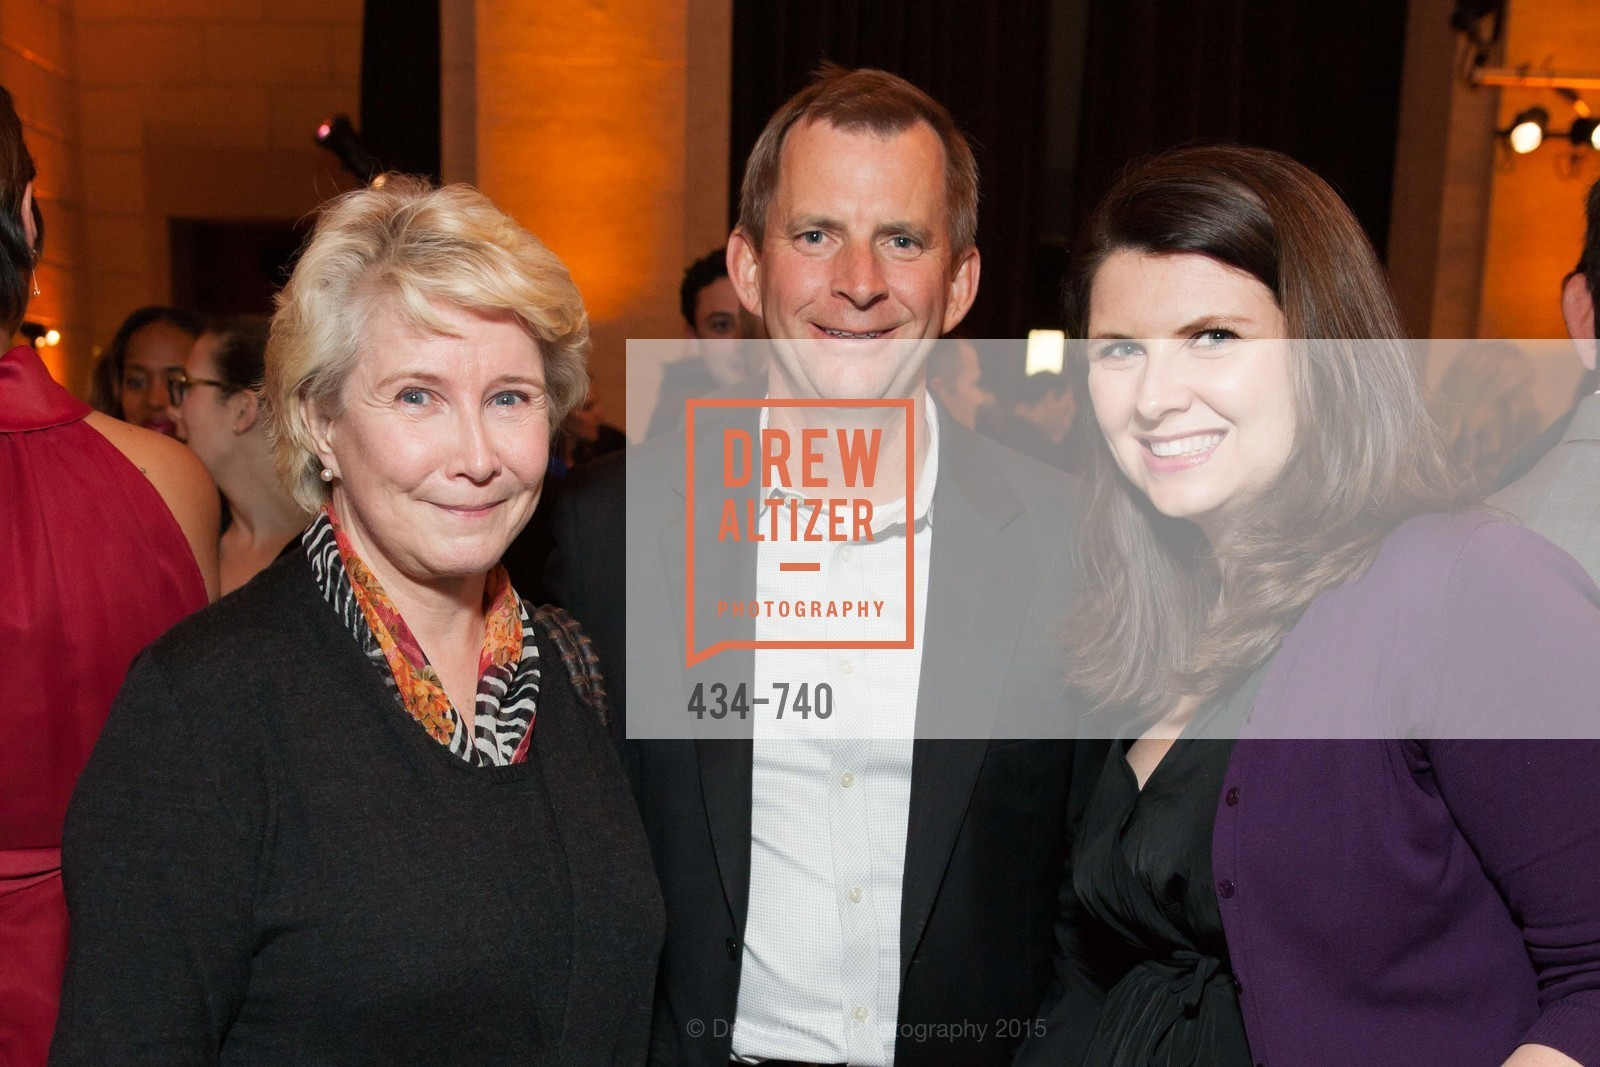 Beth Hunkapiller, Jed Wallis, Heather Vega, Aspire Annual College for Certain Dinne, US, May 21st, 2015,Drew Altizer, Drew Altizer Photography, full-service agency, private events, San Francisco photographer, photographer california